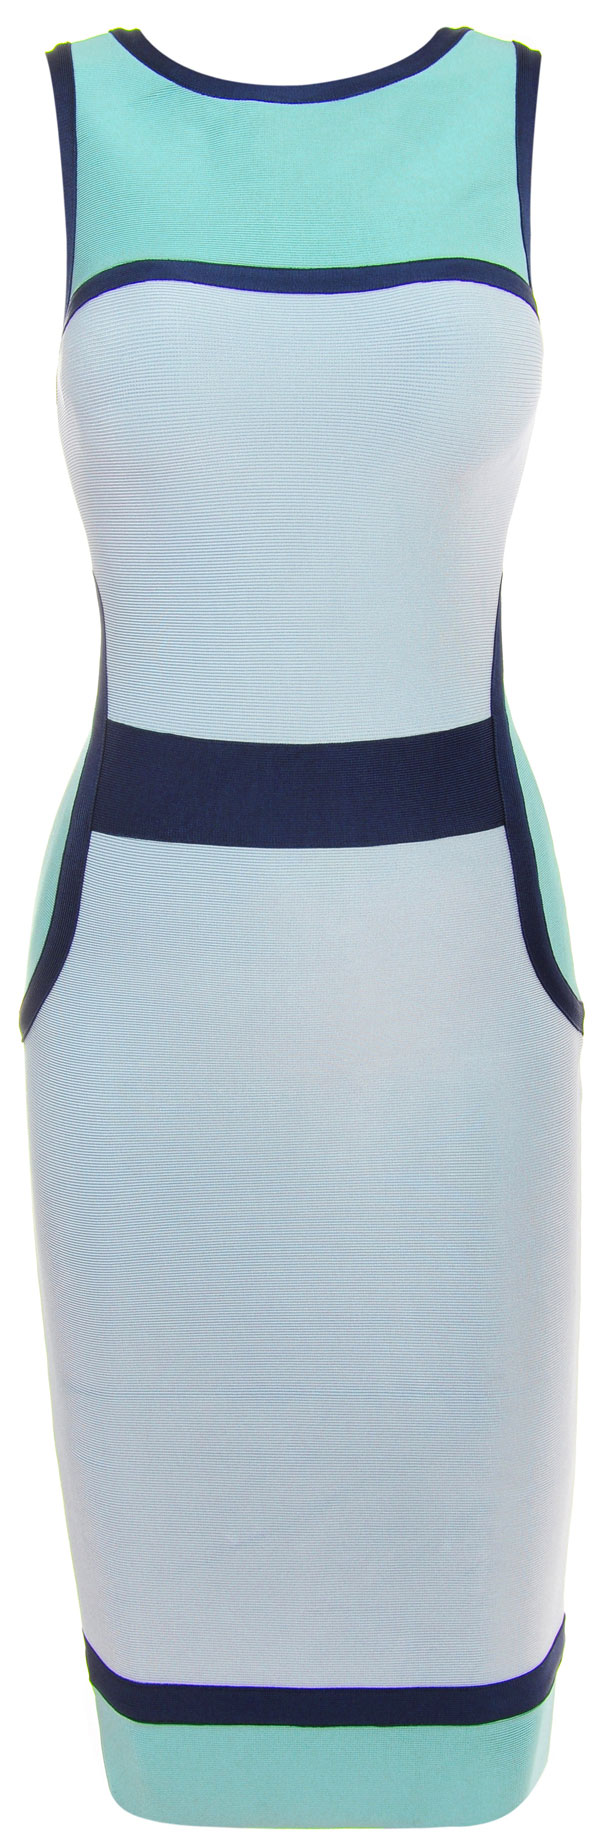 Blue and White Colorblock Pencil Bandage Dress